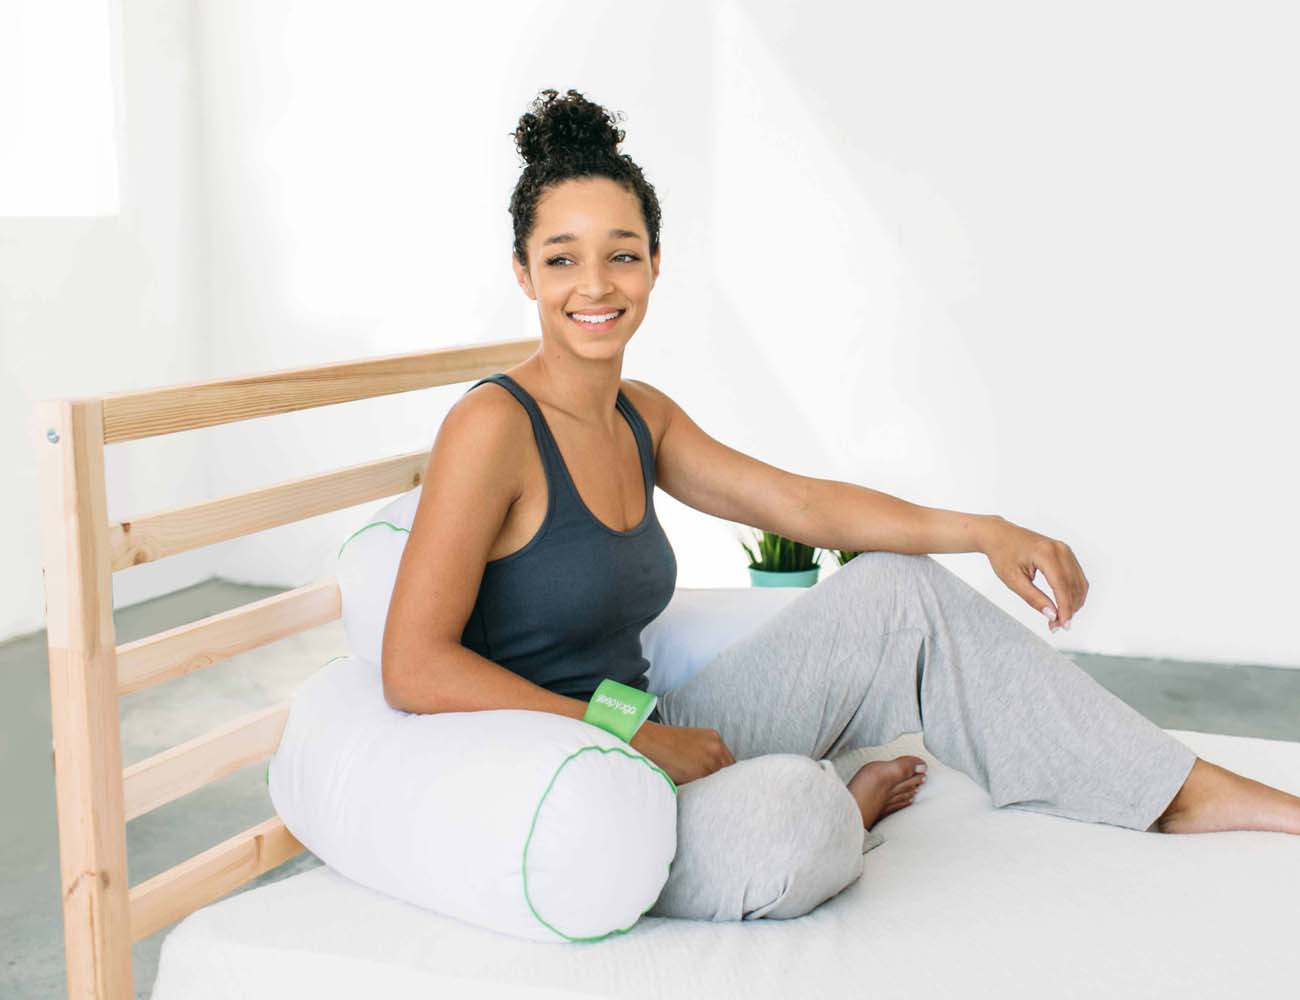 Sleep Yoga™ Posture Pillows – Improve Posture and Help Sleep